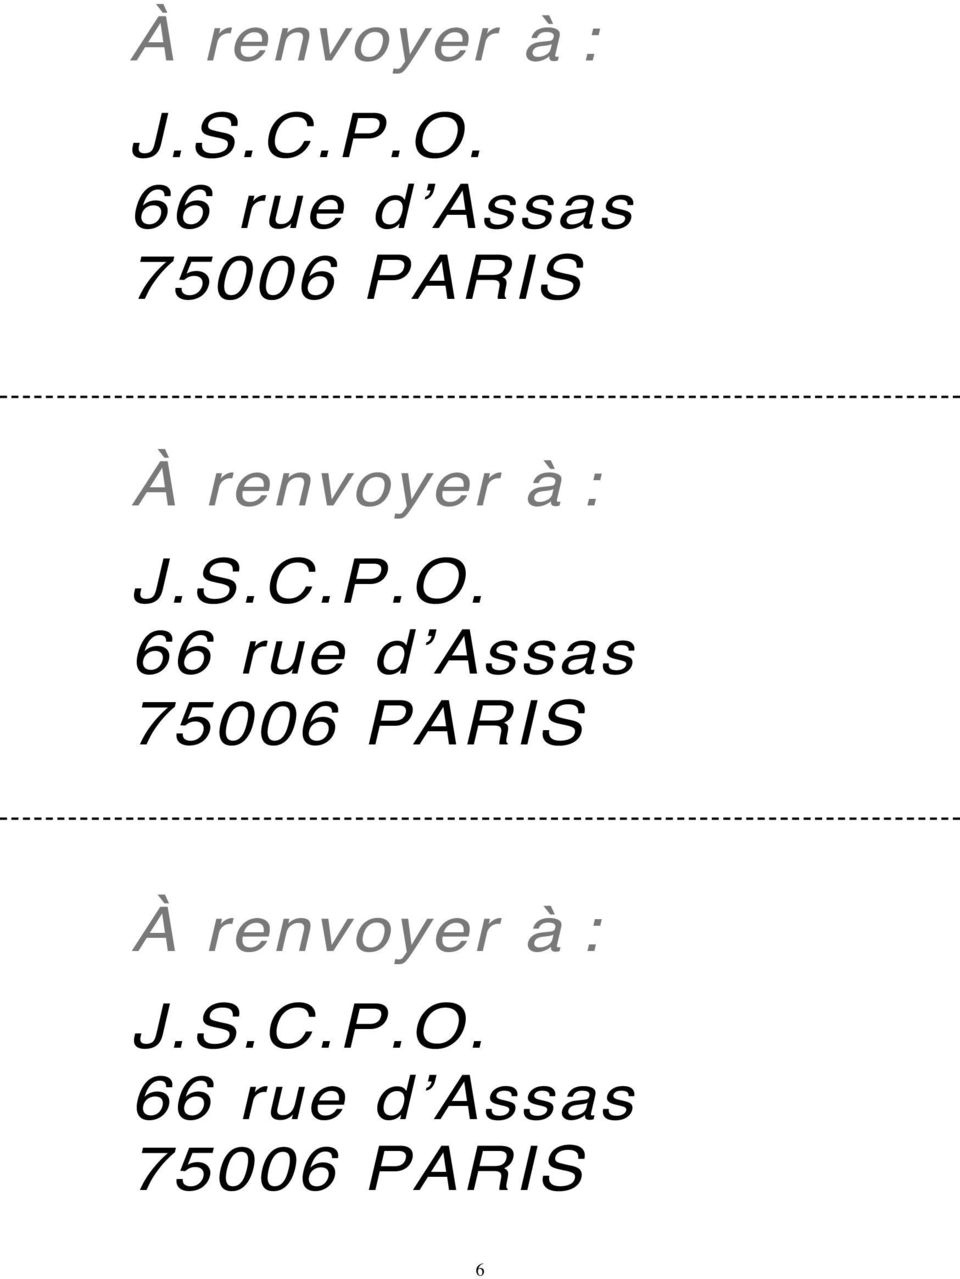 d'assas 75006 PARIS  66 rue d'assas